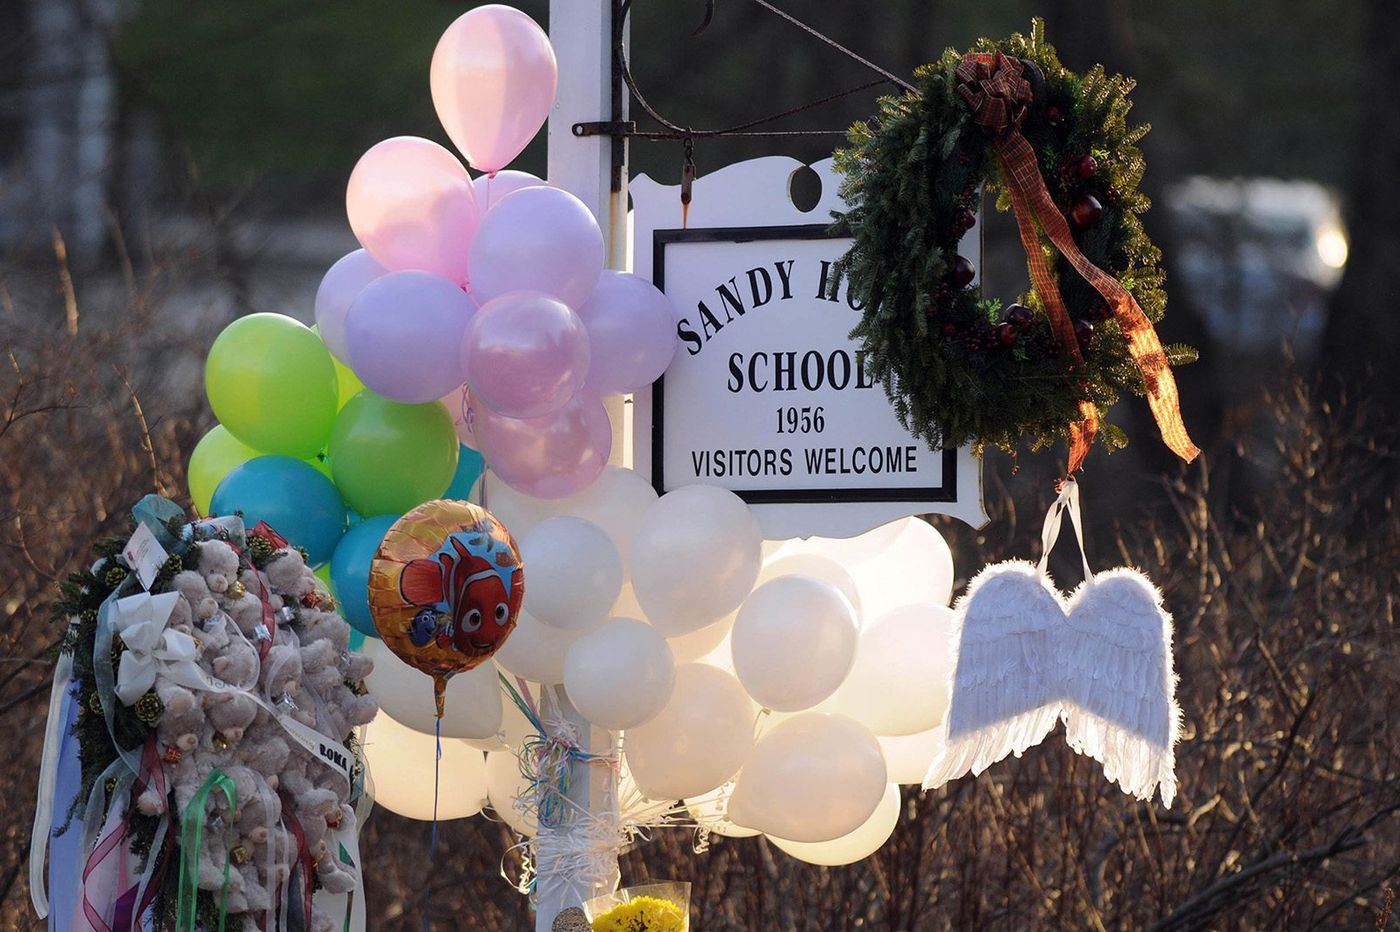 Jury awards $450,000 to father of Sandy Hook victim in defamation case